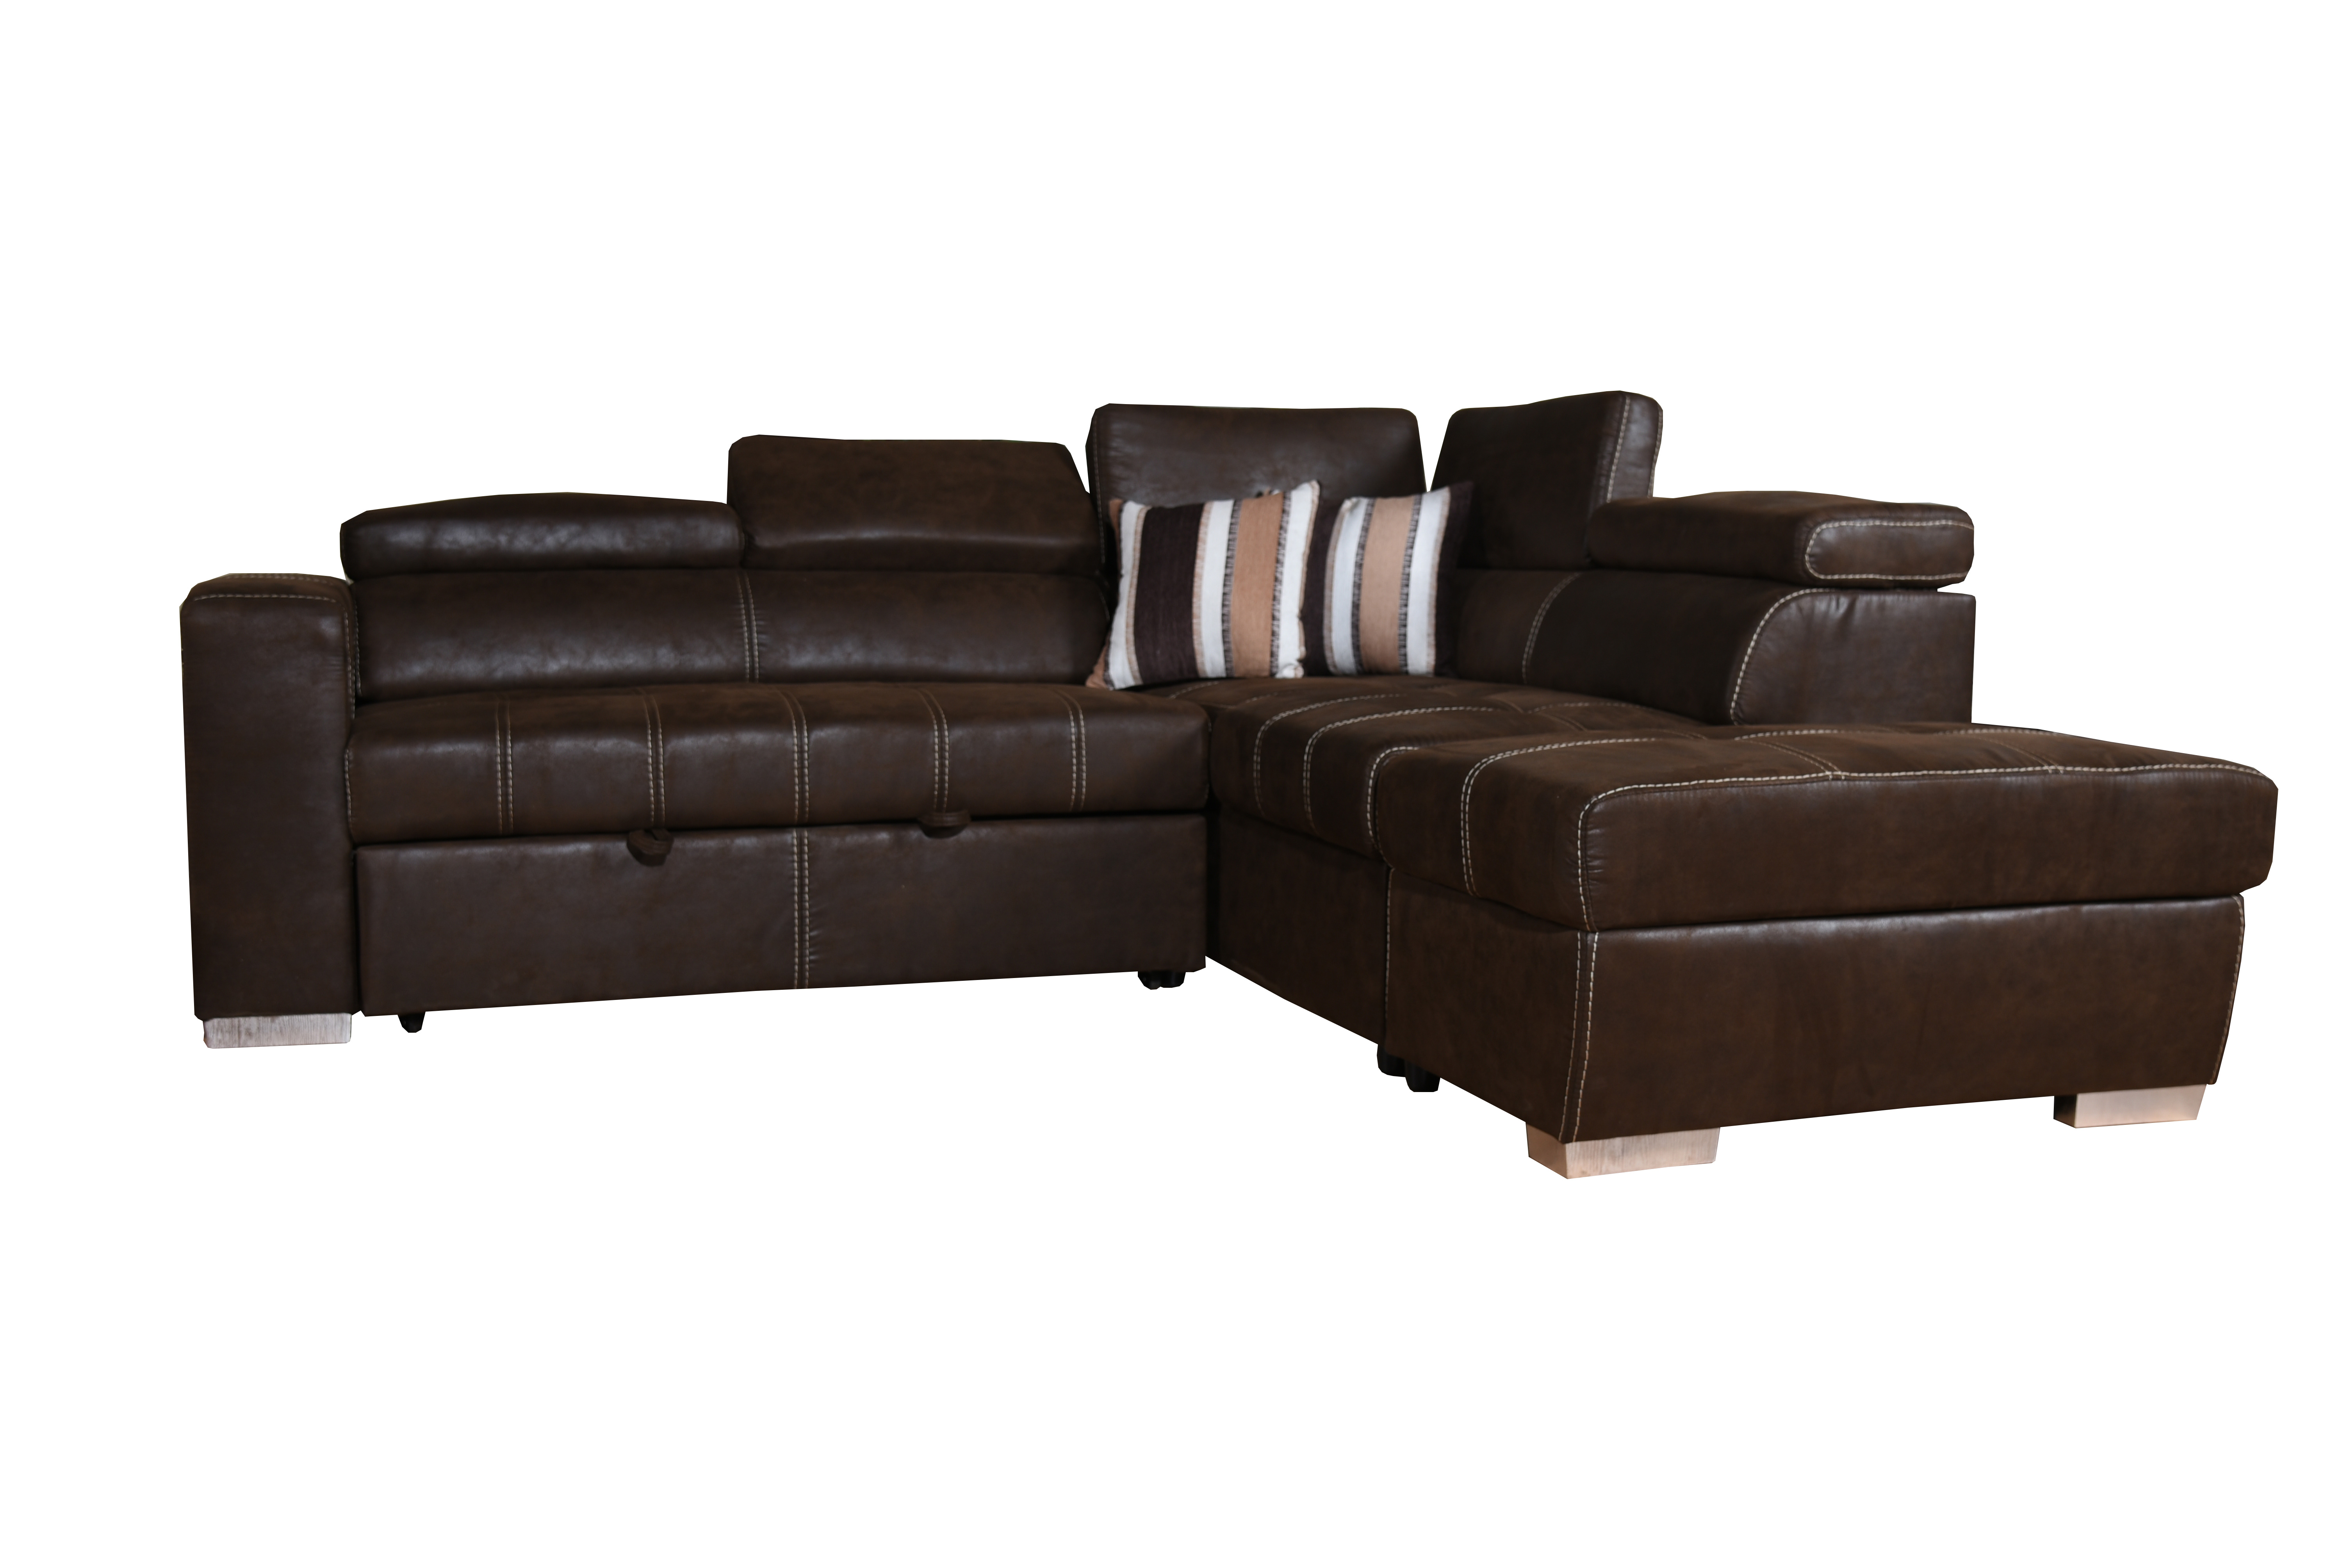 Hs001 Corner Sleeper Couch Corner Sleeper Couches For